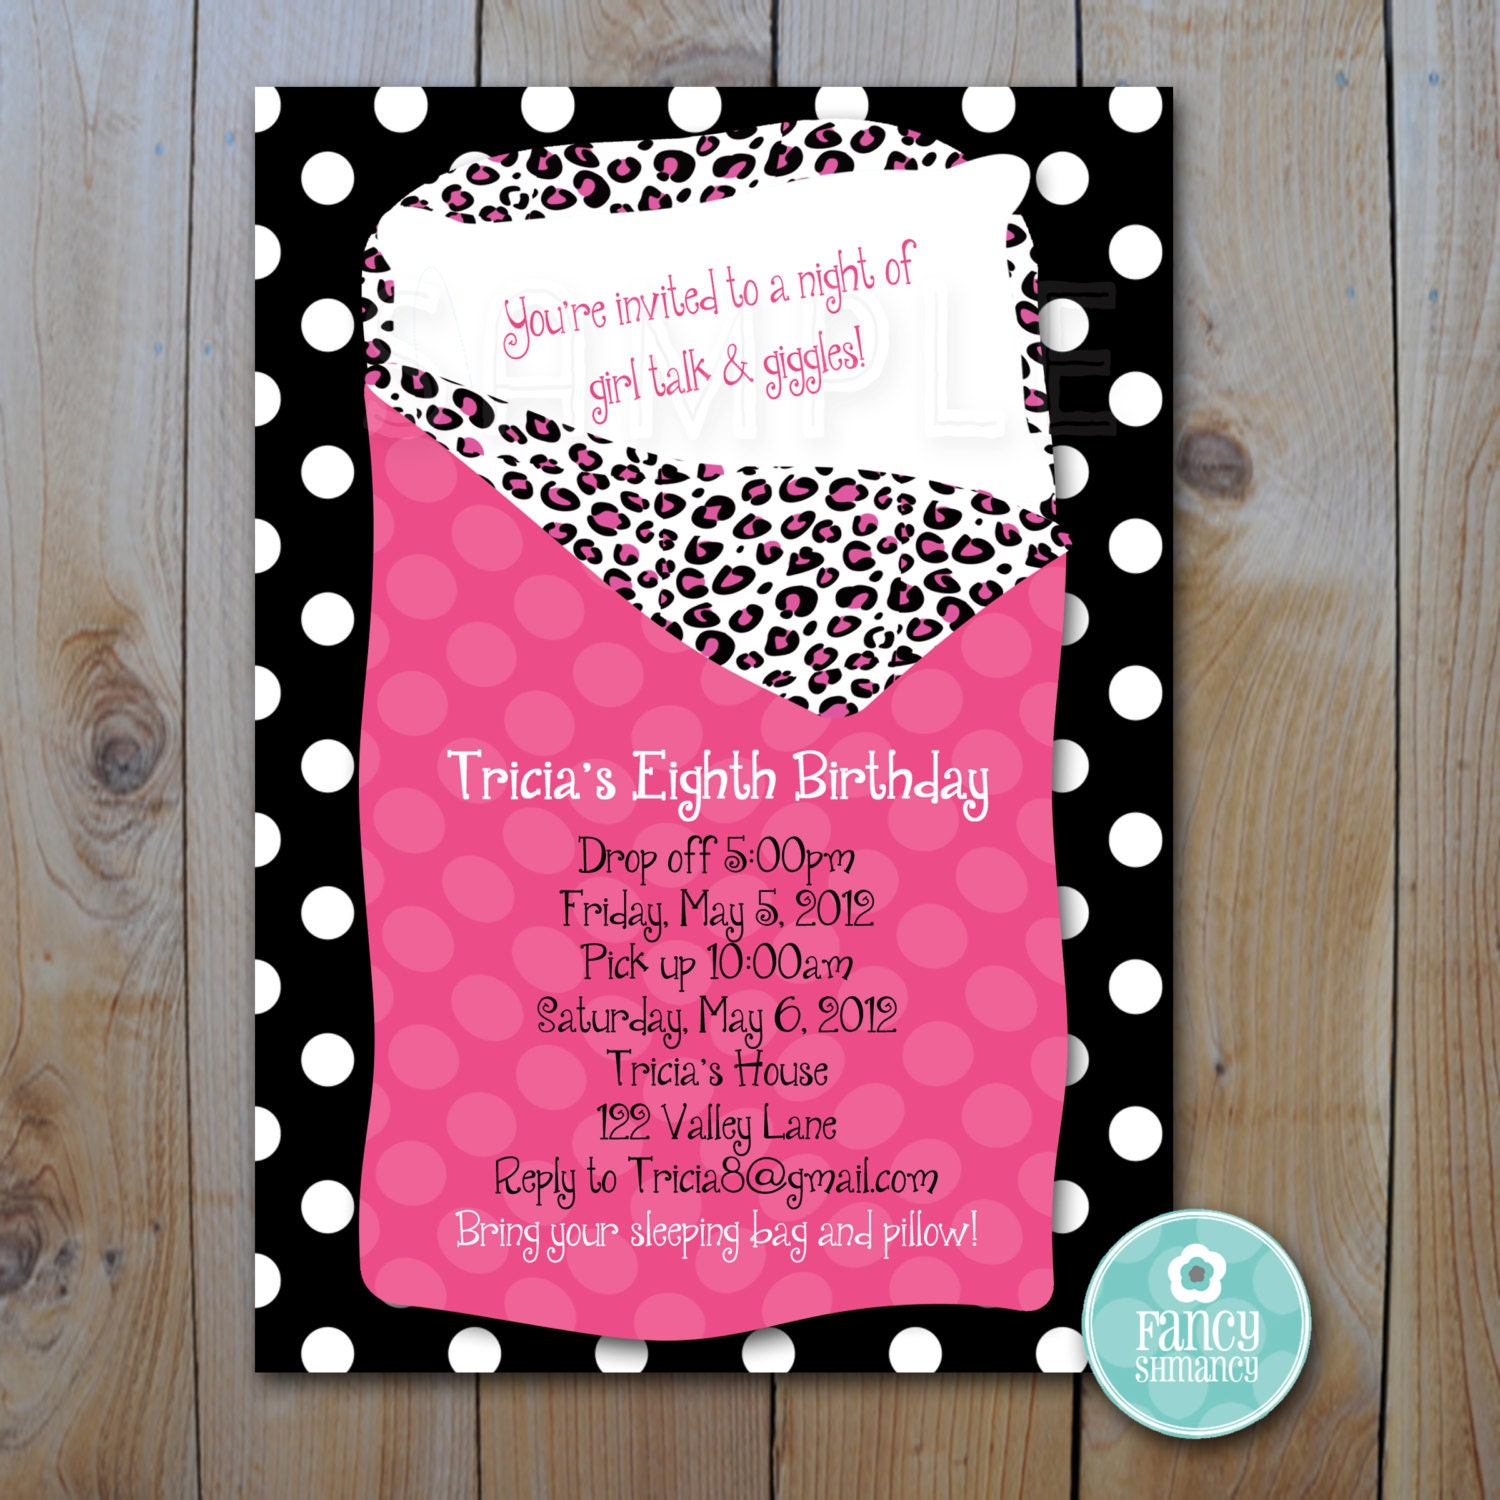 slumber party invitations make your own - Picture Ideas References